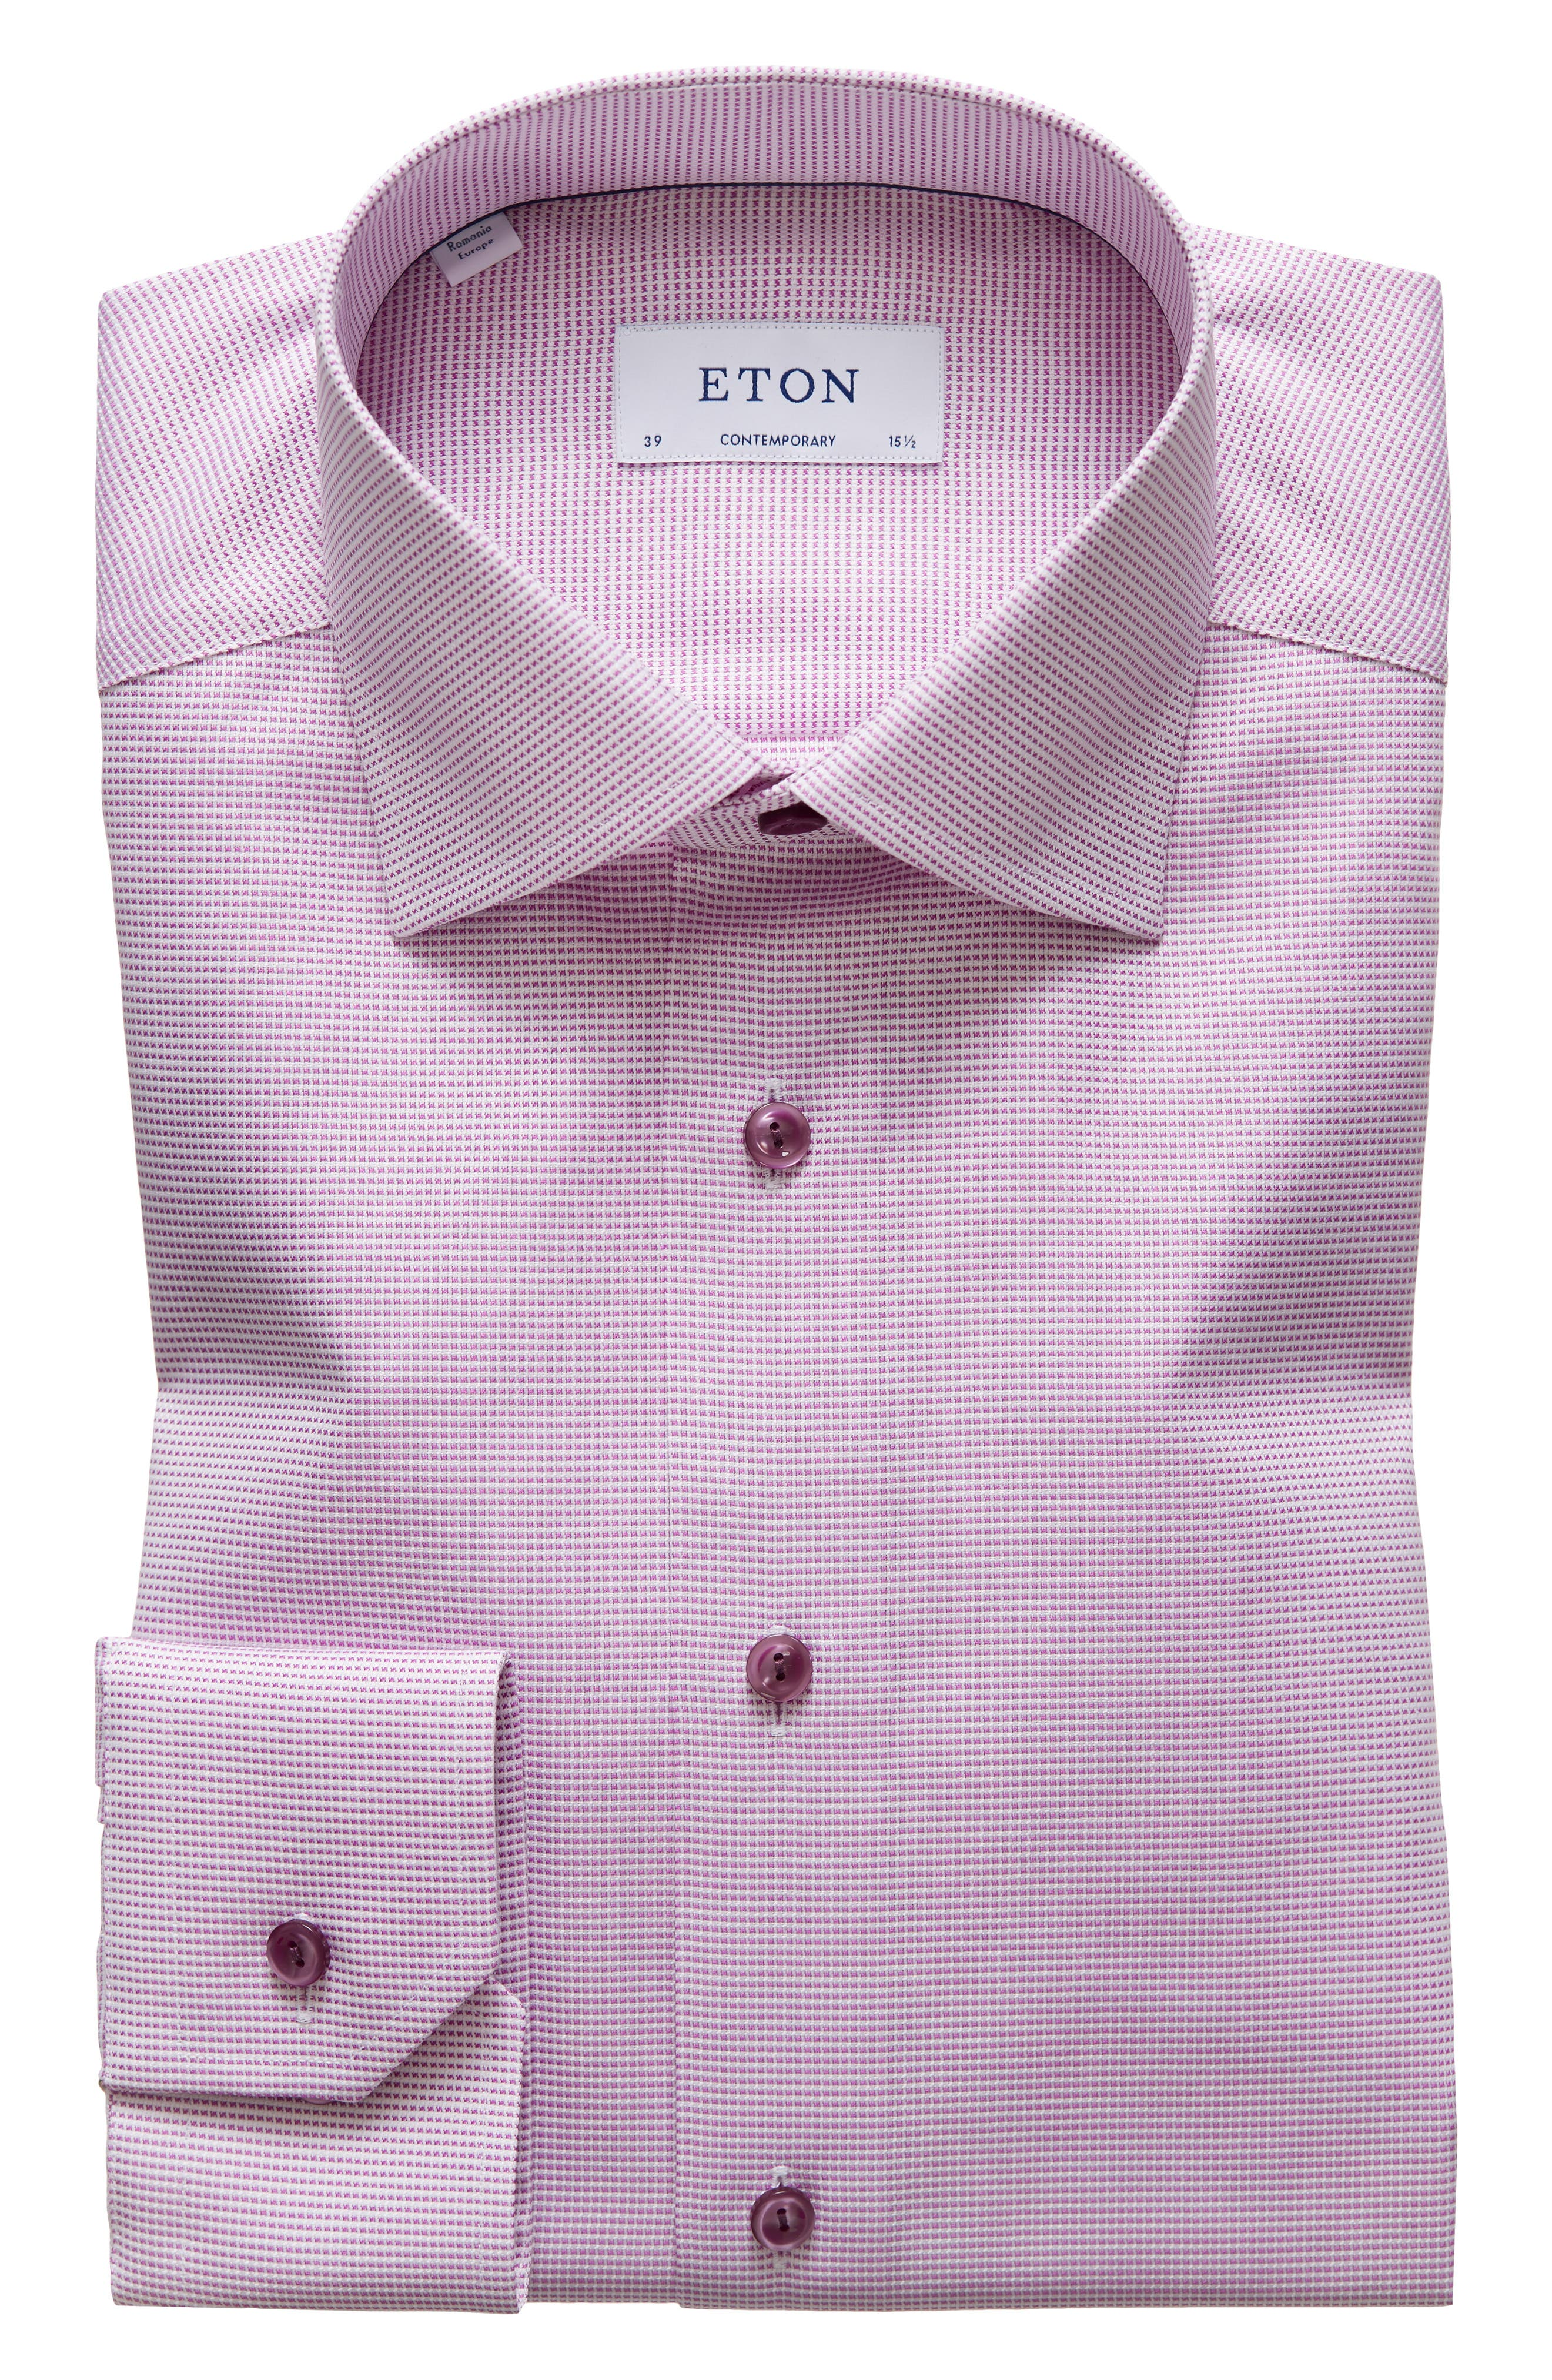 Image of Eton Contemporary Fit Solid Dress Shirt